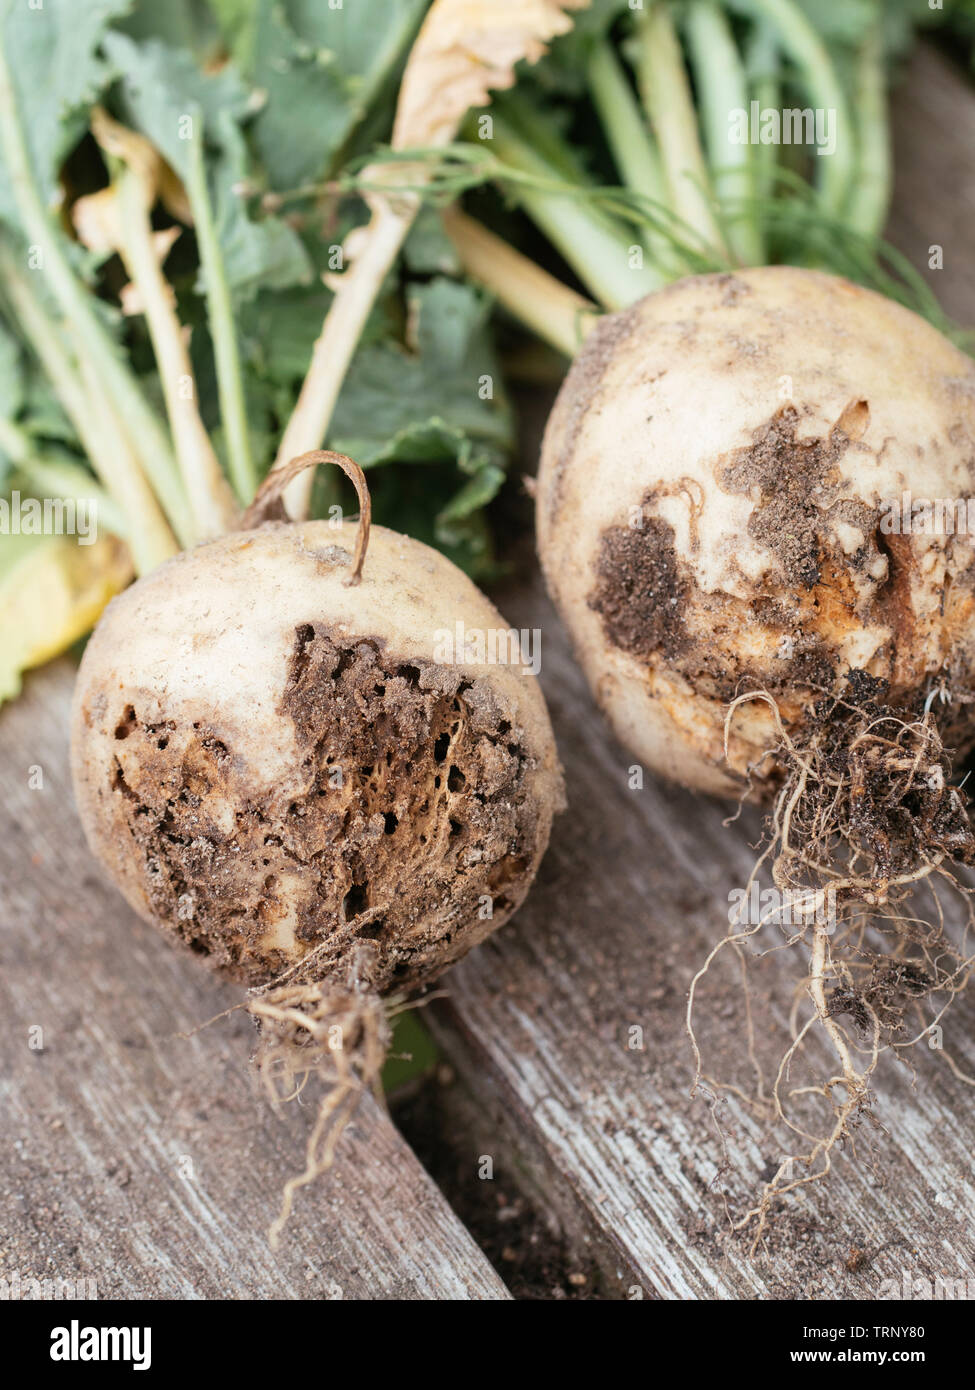 May turnip (Brassica rapa subsp. rapa var. majalis) with damage caused by the root maggot Stock Photo